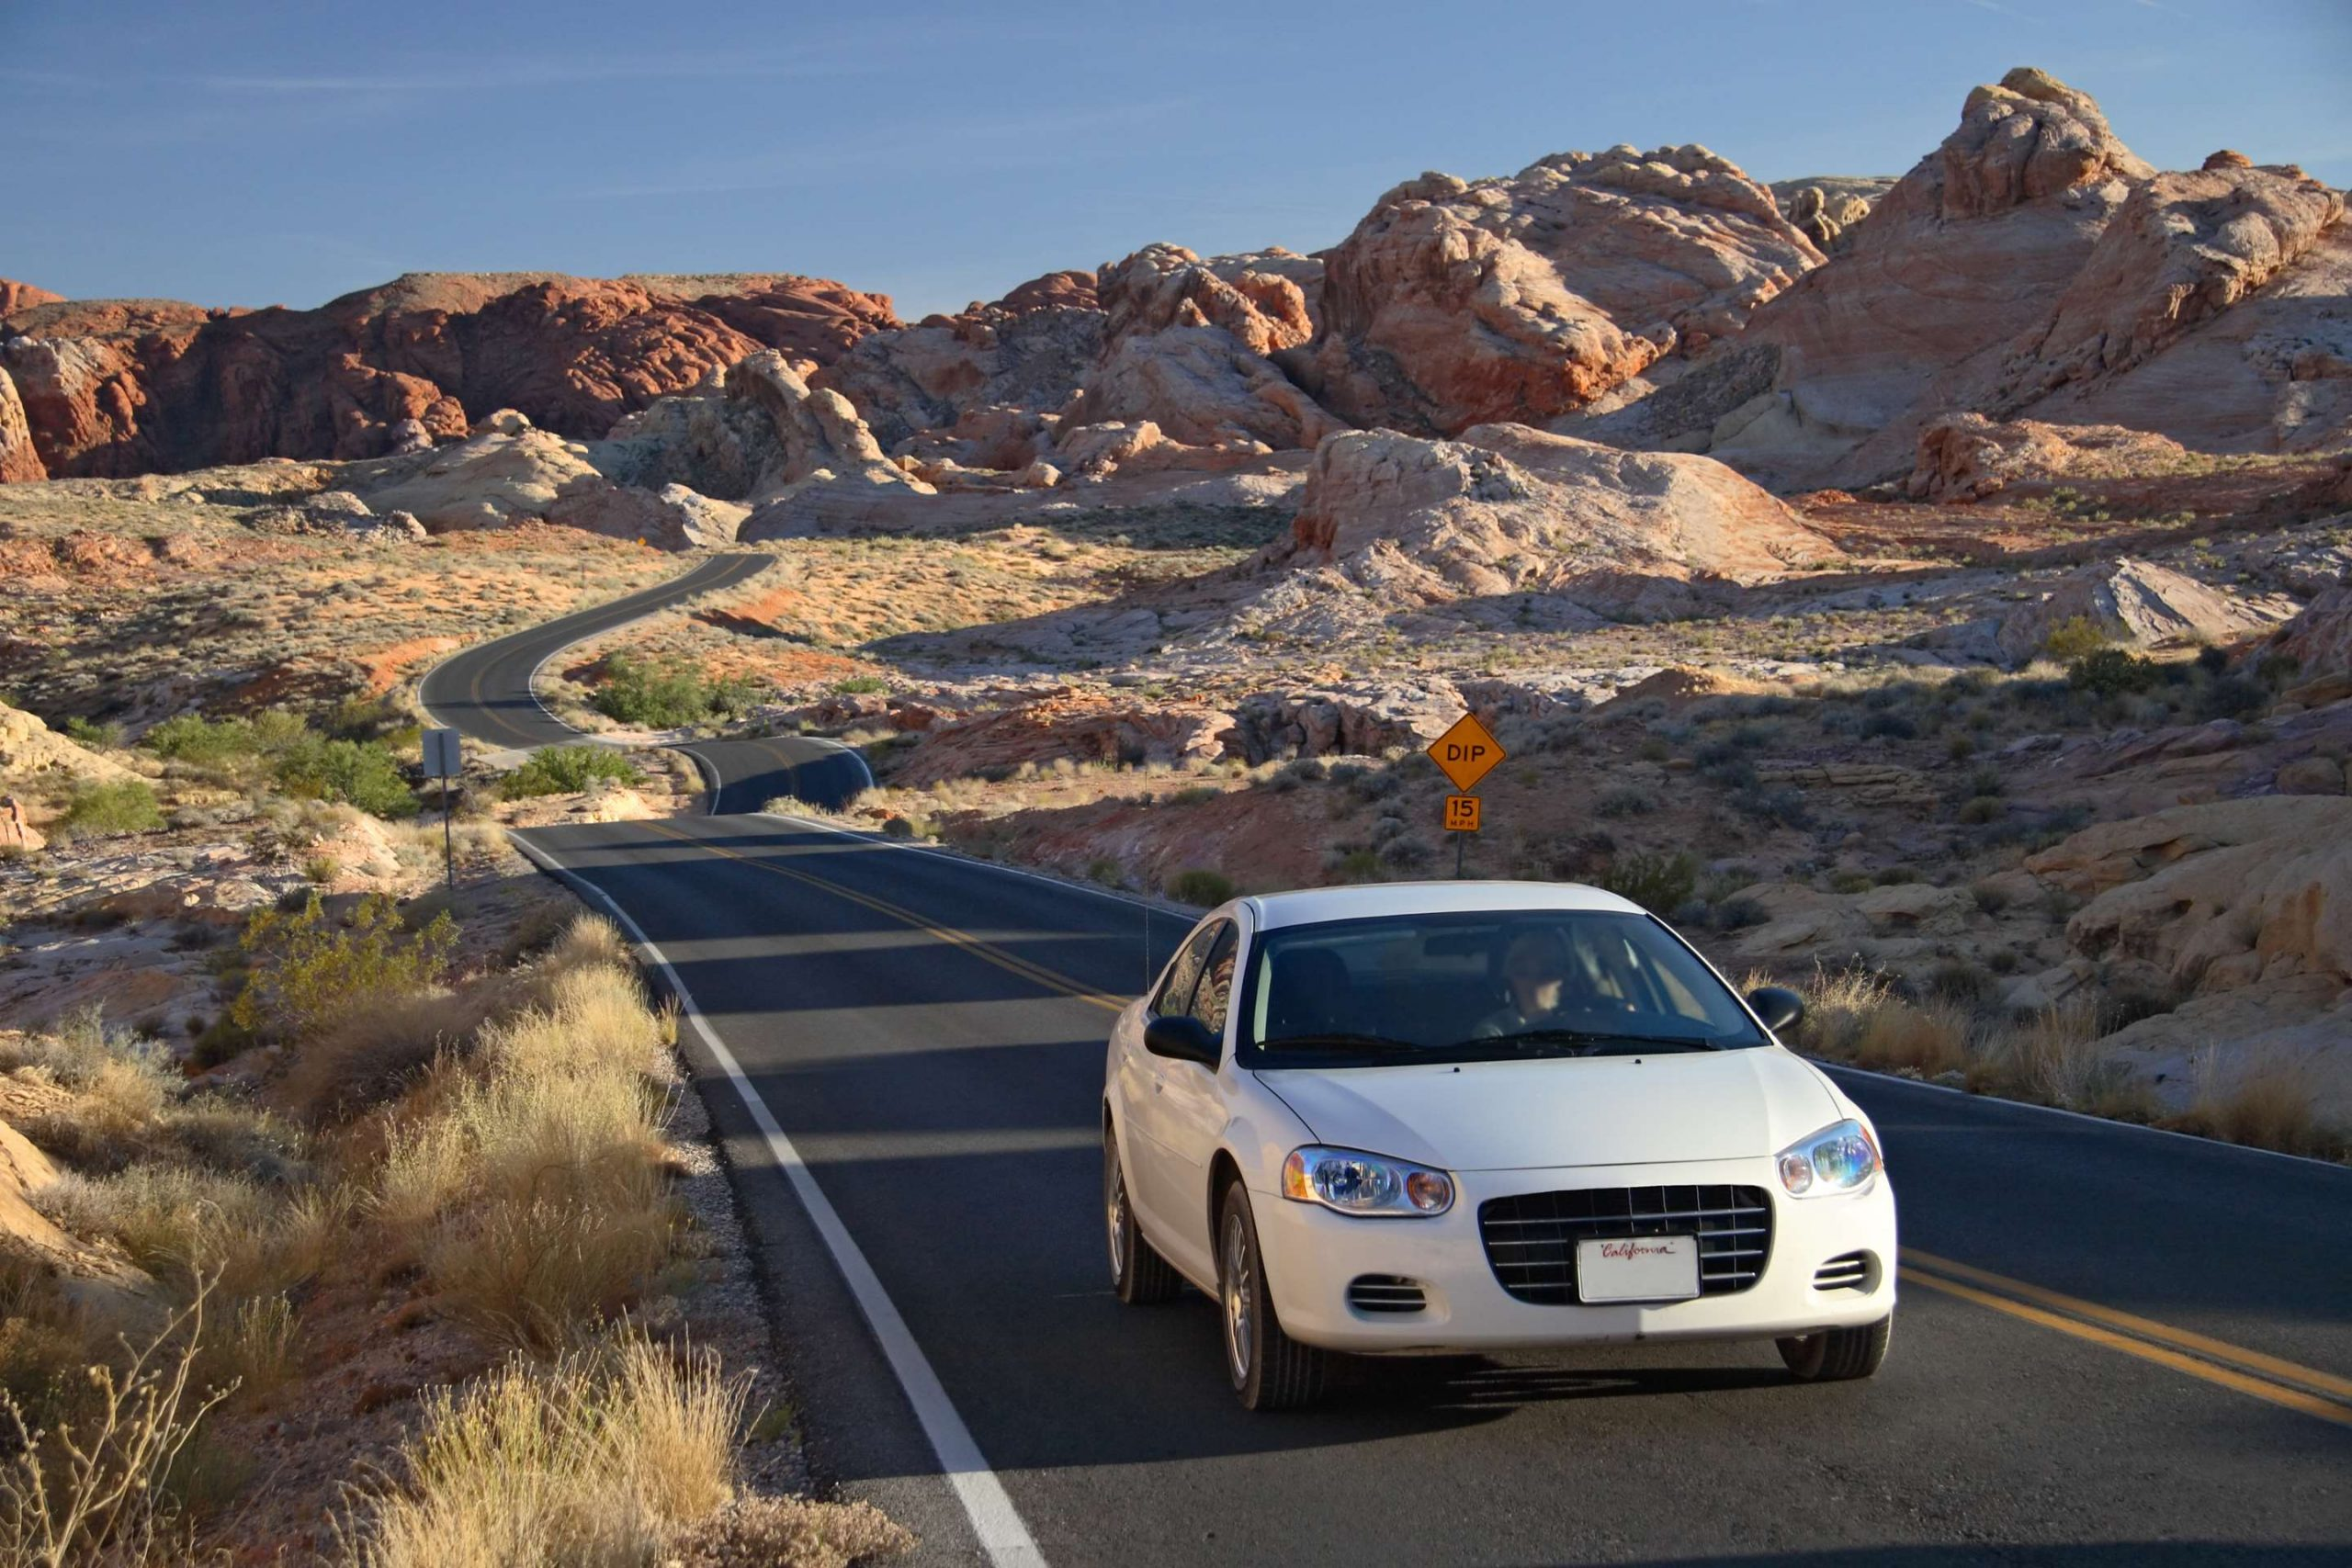 High-end Car Rental - Go For Luxurious And Independent Traveling